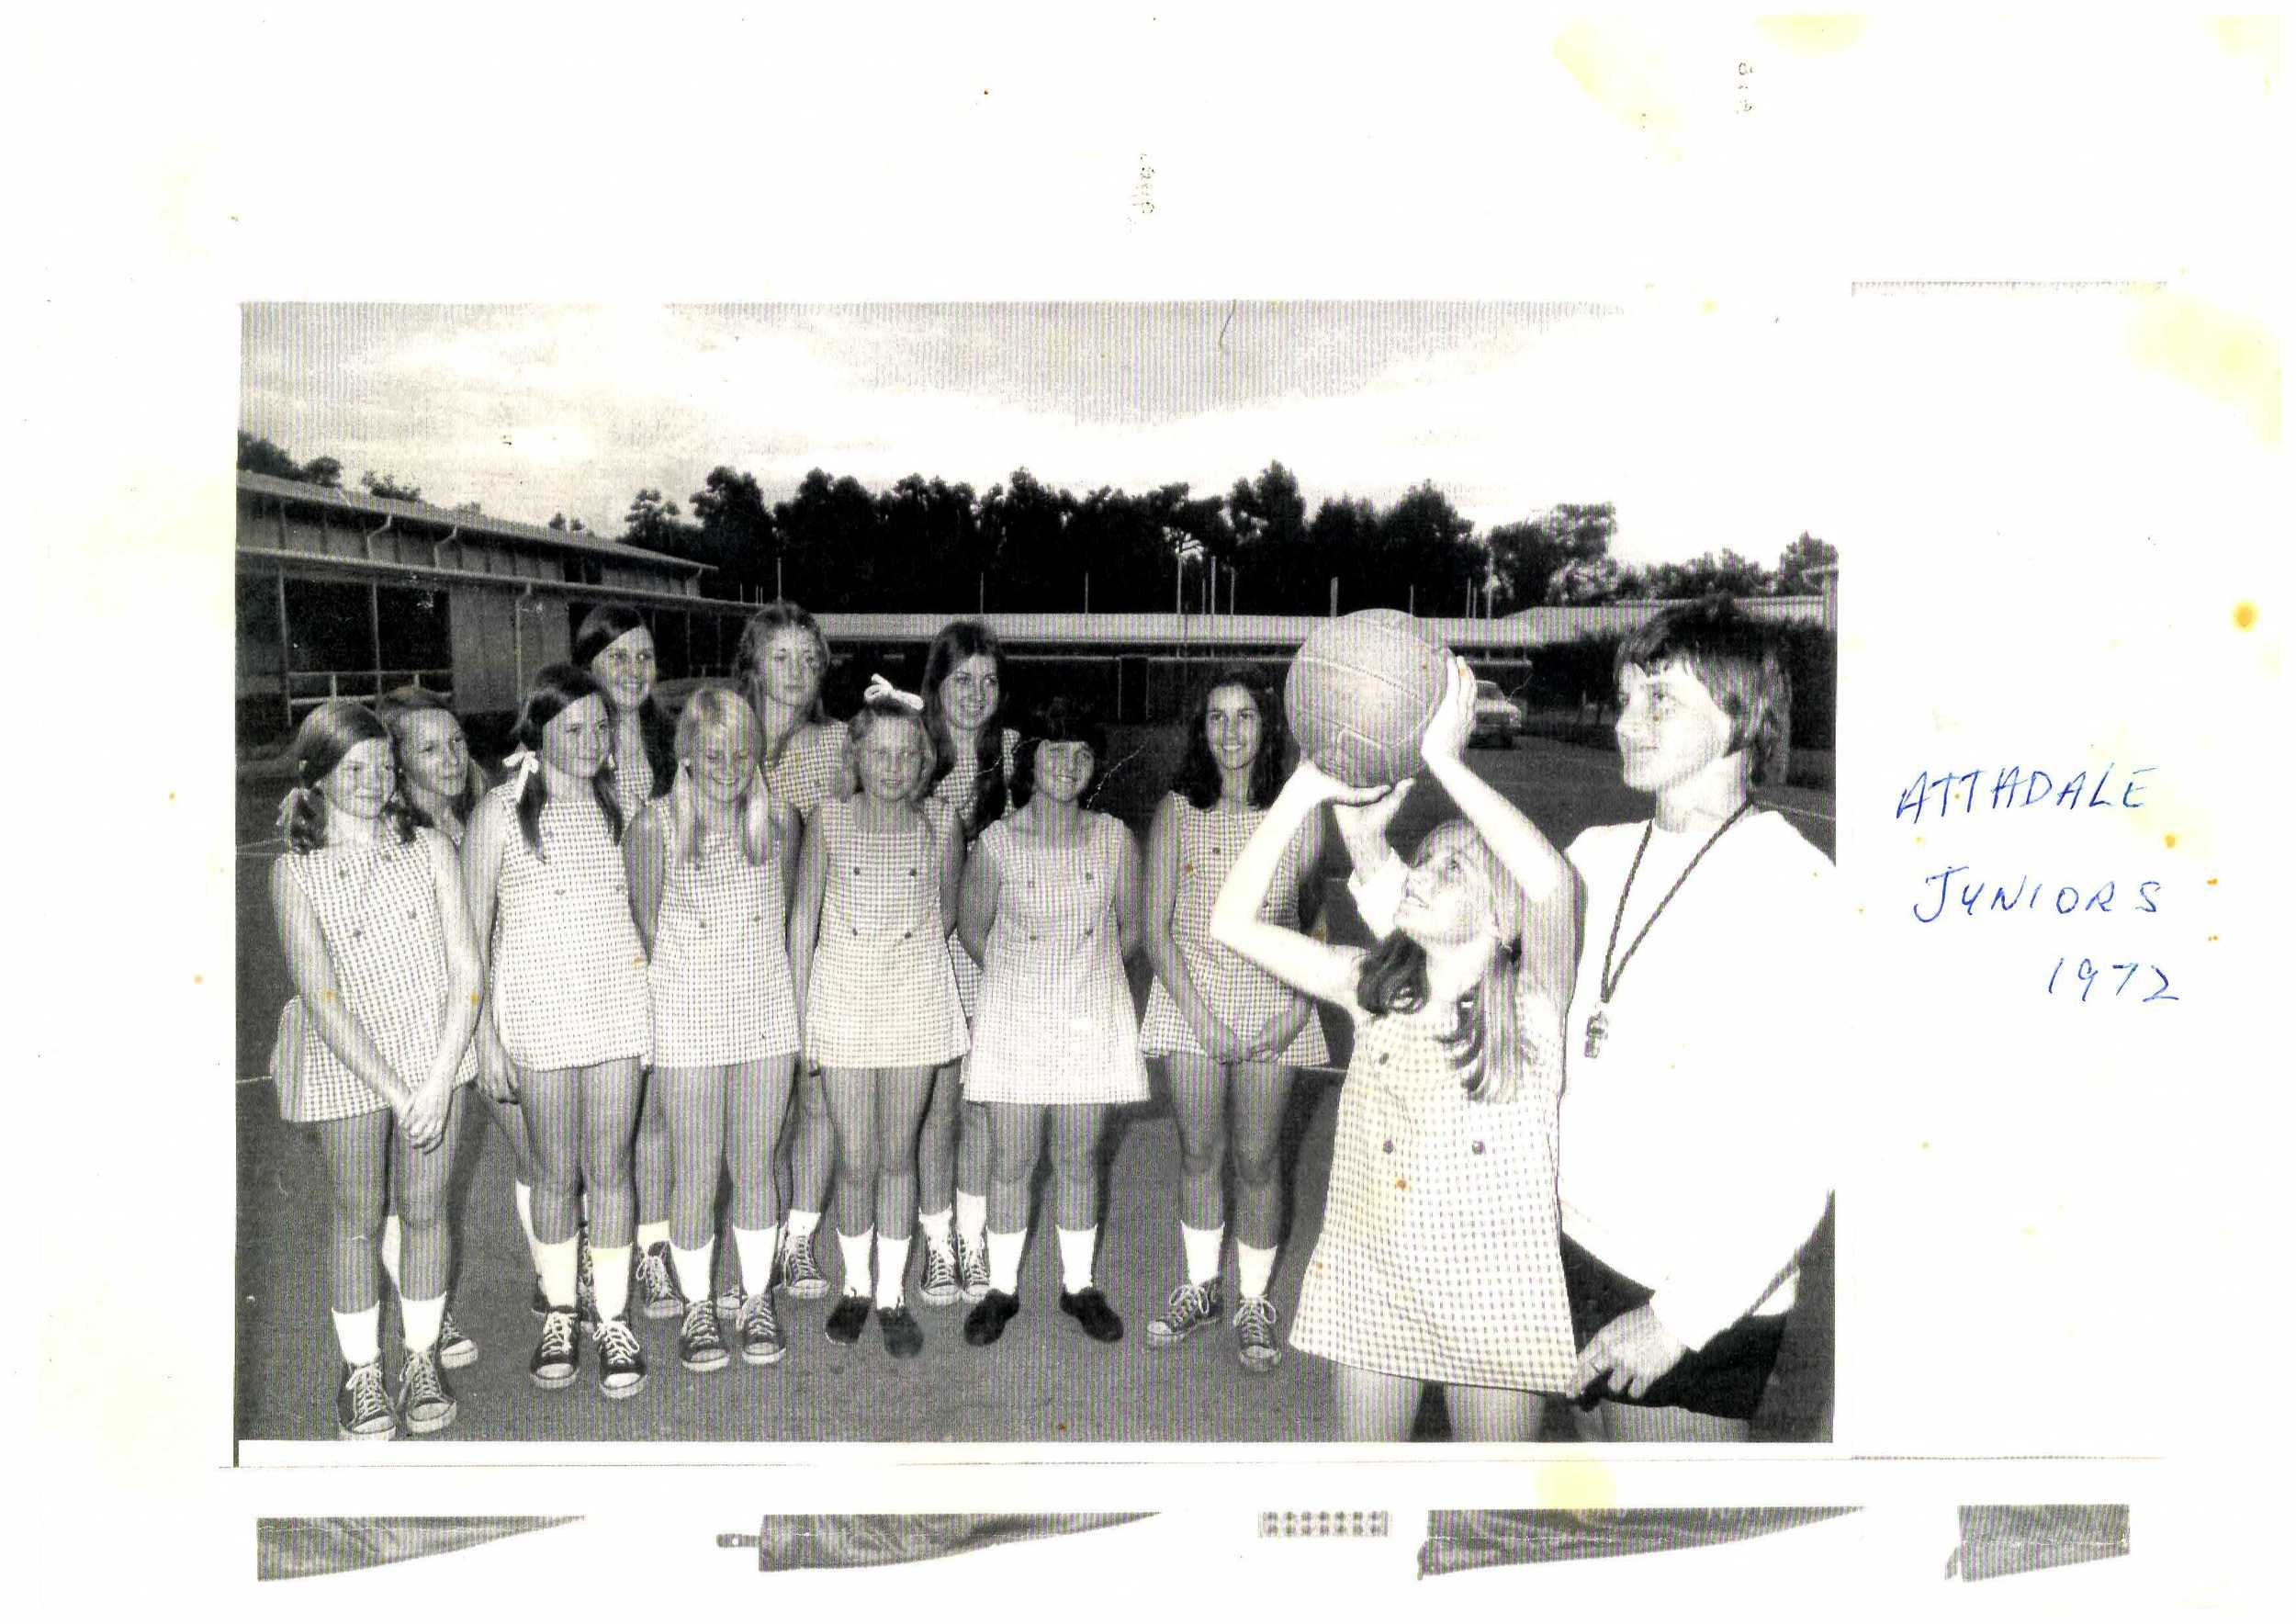 Attadale Netball Club Juniors in 1972, with Marilyn Williams